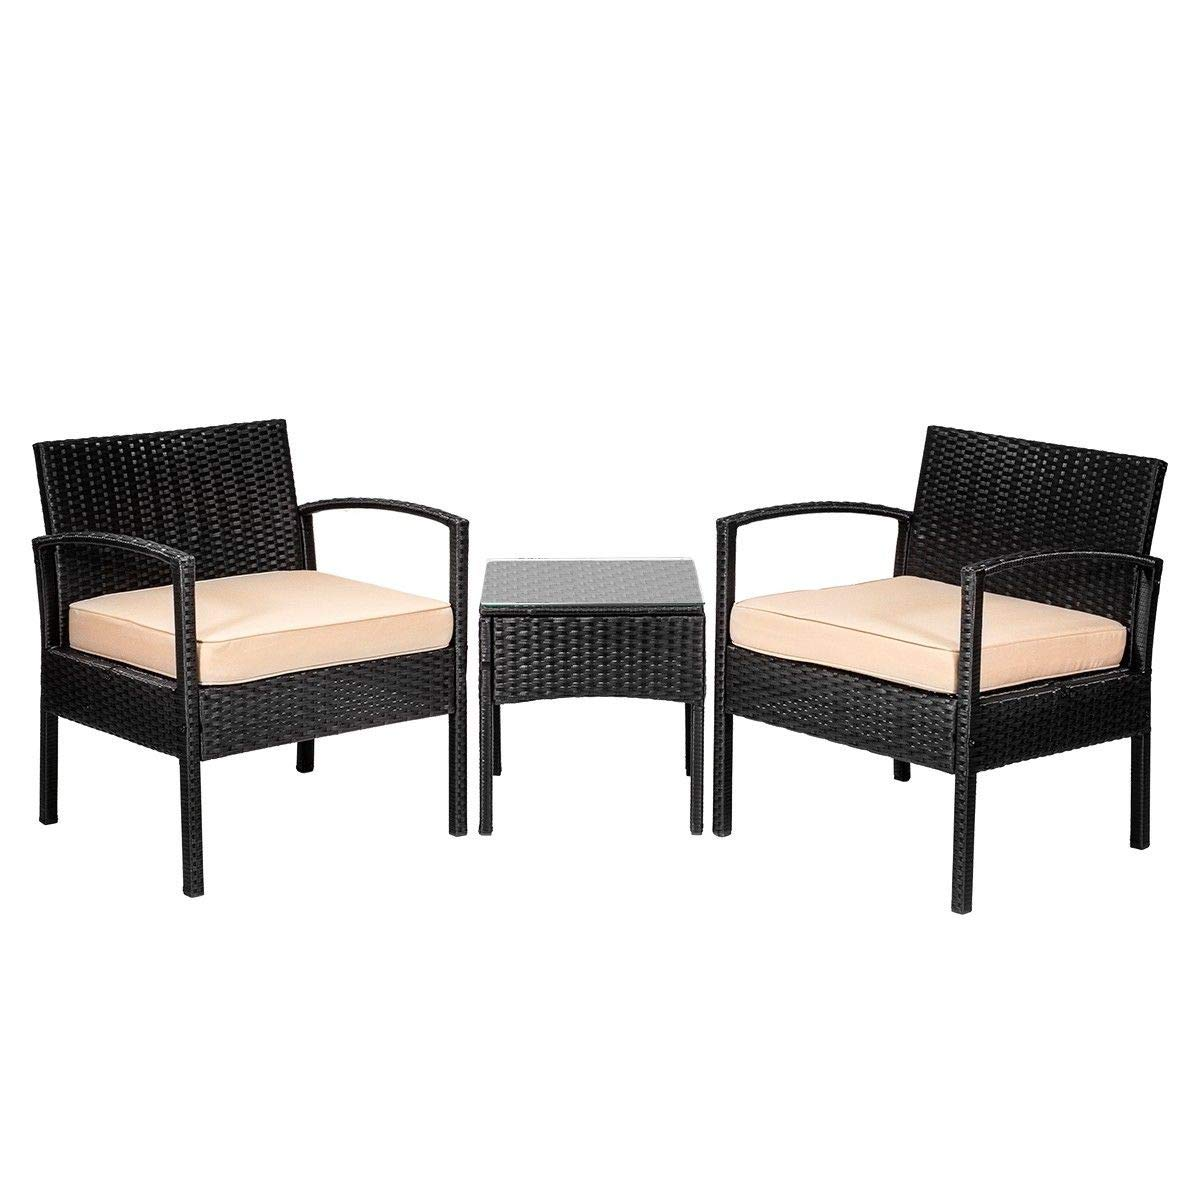 9TRADING 3 PC Rattan Wicker Furniture Table Chair Sofa Cushioned Patio Outdoor Gardening